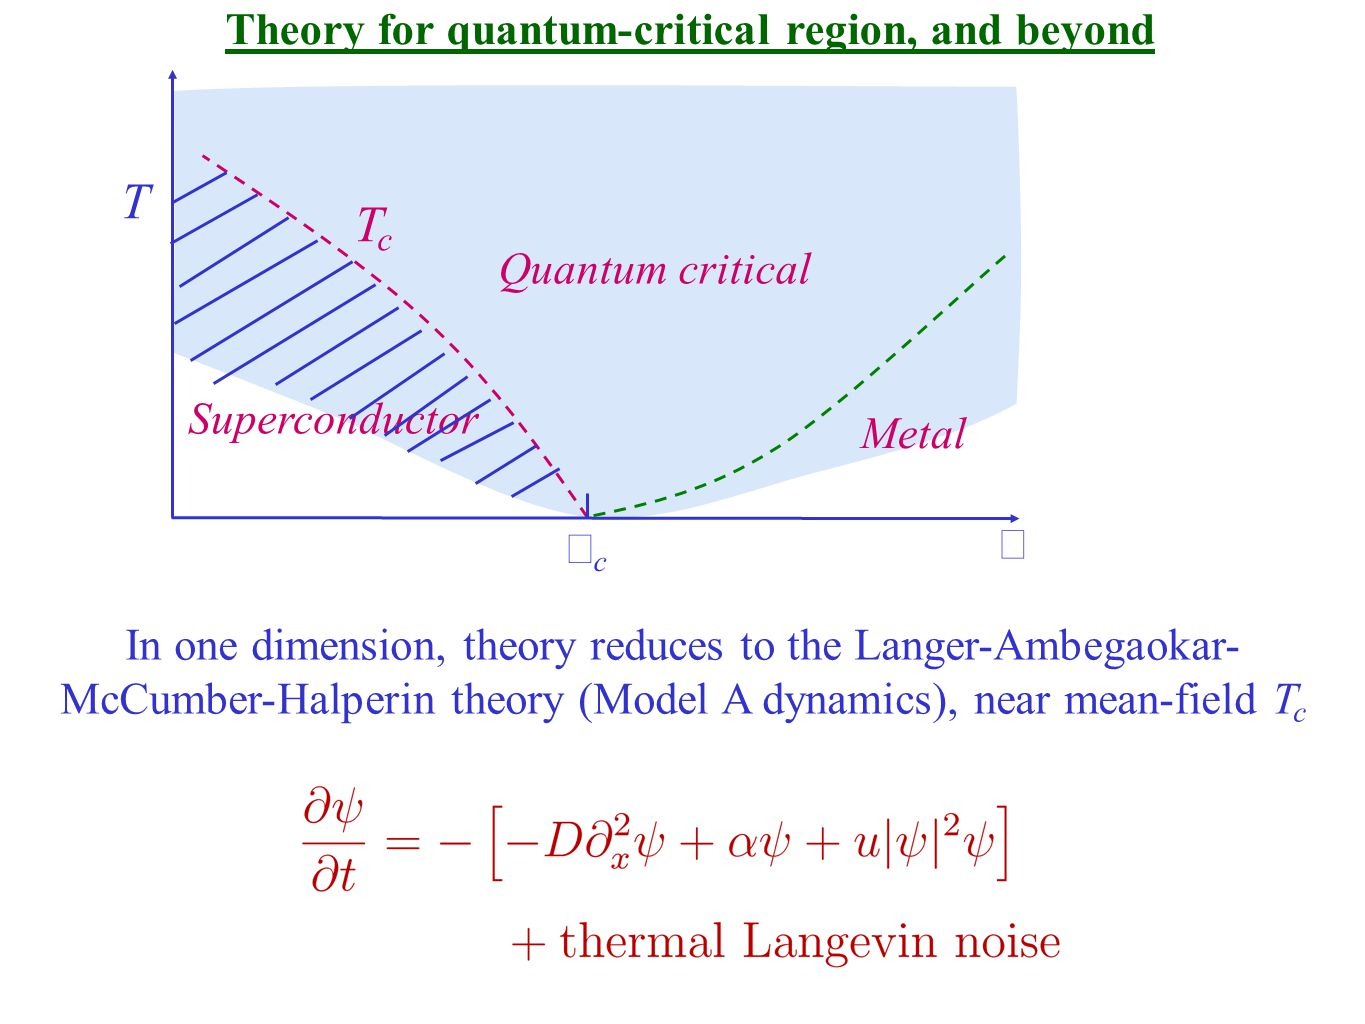 Theory for quantum-critical region, and beyond T Superconductor  Metal TcTc cc Quantum critical In one dimension, theory reduces to the Langer-Ambegaokar- McCumber-Halperin theory (Model A dynamics), near mean-field T c